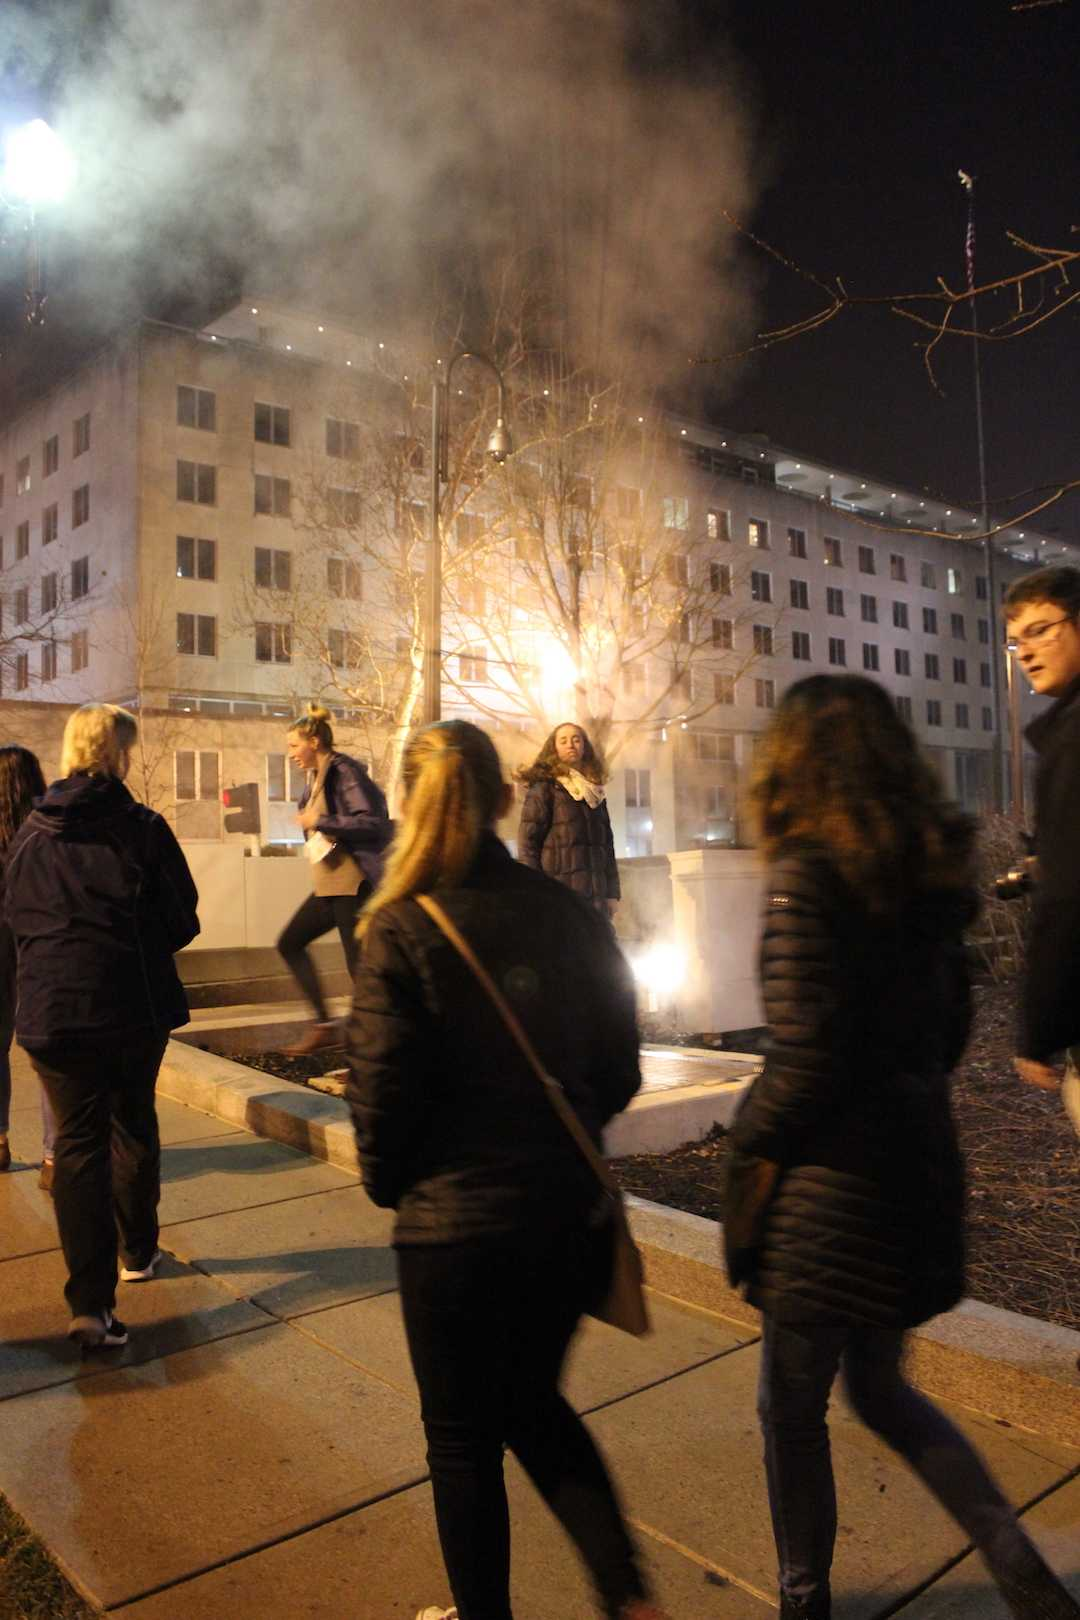 Pretending+to+be+Marilyn+Monroe+over+a+street+grate+after+a+night+of+seeing+The+National+Mall.+